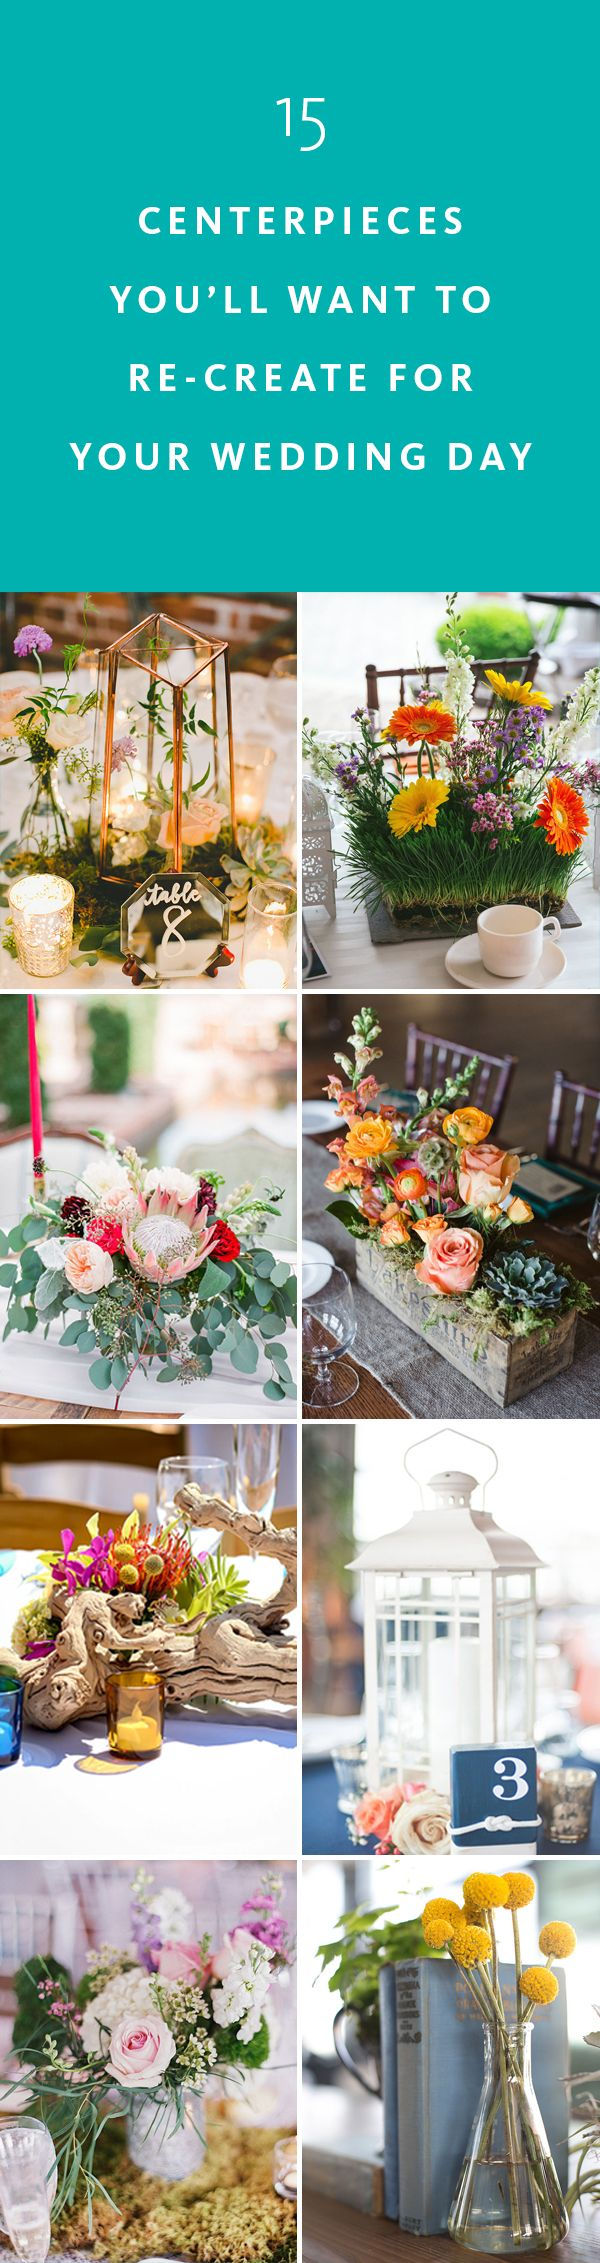 make your own wedding flower centerpieces%0A    Centerpieces You u    ll Want to ReCreate for Your Wedding Day